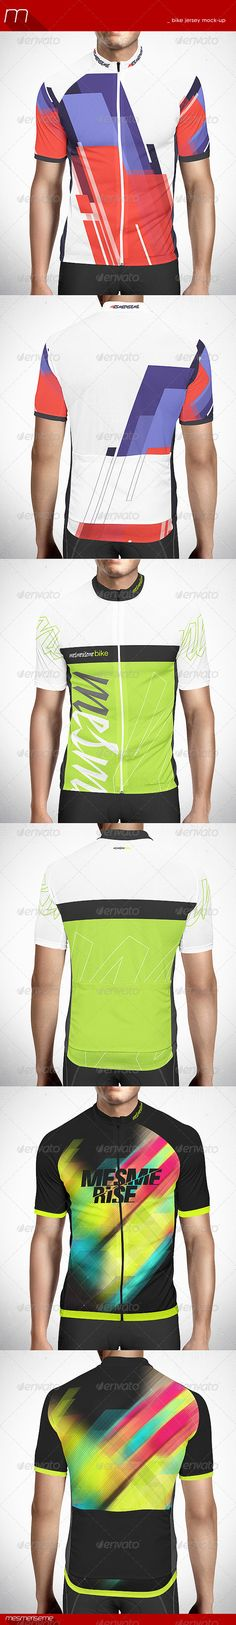 Bike Jersey Mock-up ad, advertisment, bicycle, bike, biker, competition, cycle, cyclist, elastic, logo, marathon, mock up, mock-up, mockup, mountain, mtb, race, running, shirt, sponsor, sport, start, suit, t-shirt, tee, template, tourne, tshirt, Bike Jersey Mock-up